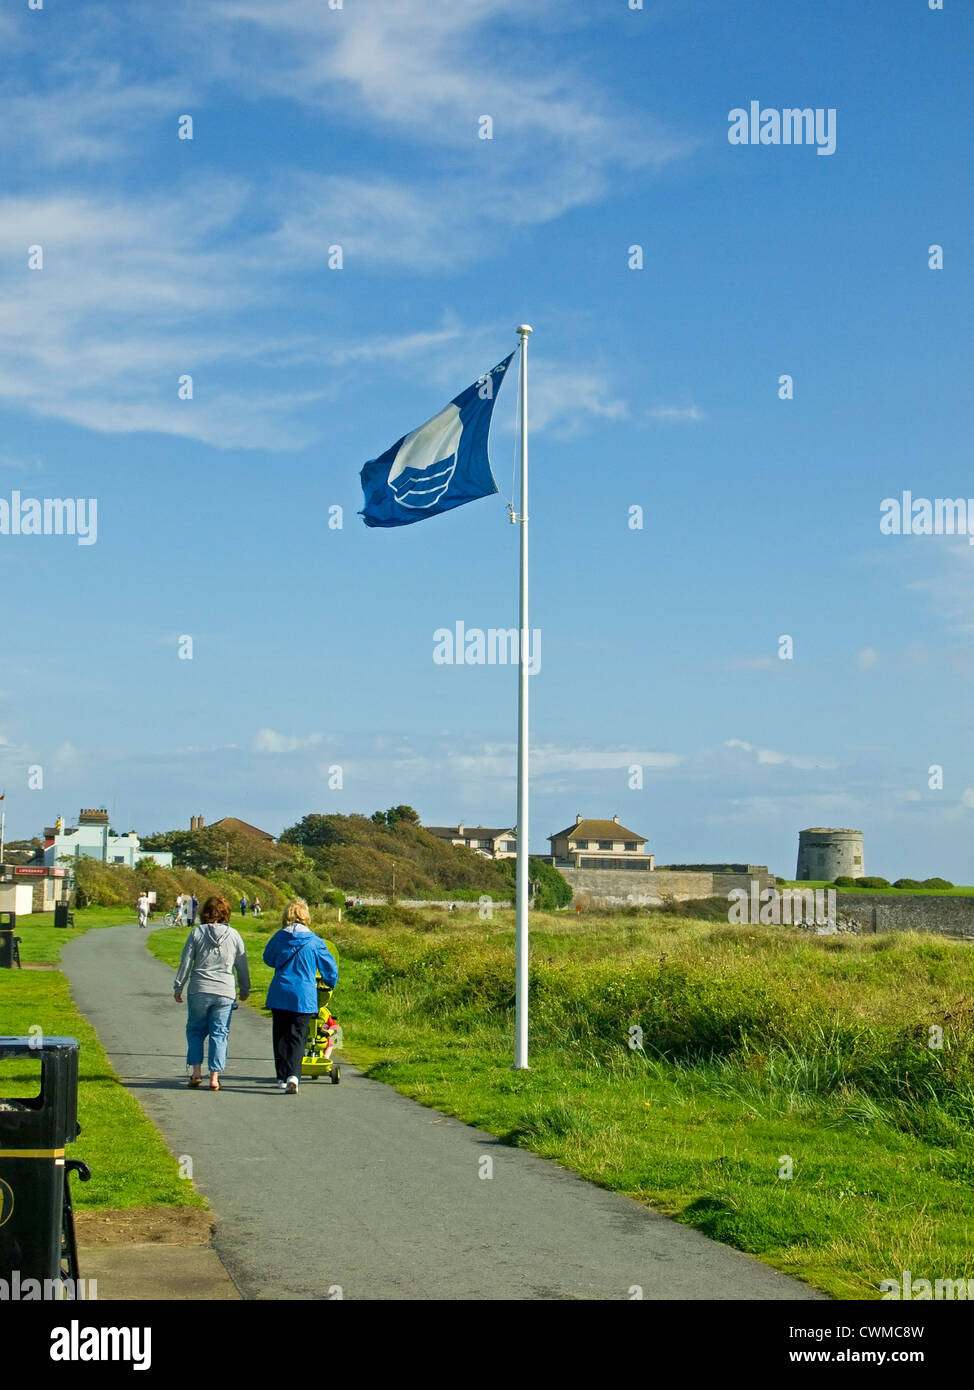 The EU Blue Flag, symbol of good bathing water quality, flying on the promenade of Skerries south beach, county - Stock Image